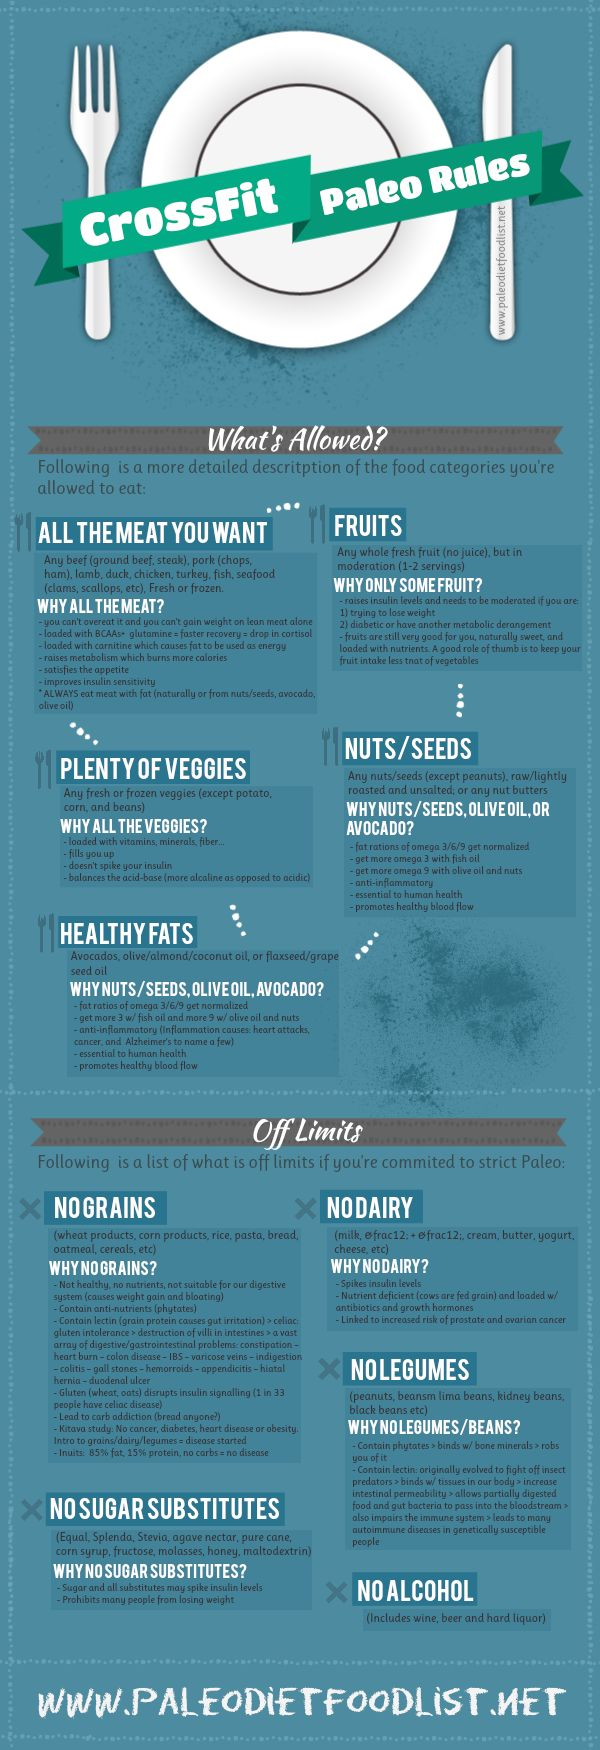 Paleo Diet: The basics. I would add that you should strive for lean meats. #Paleo #paleohunt